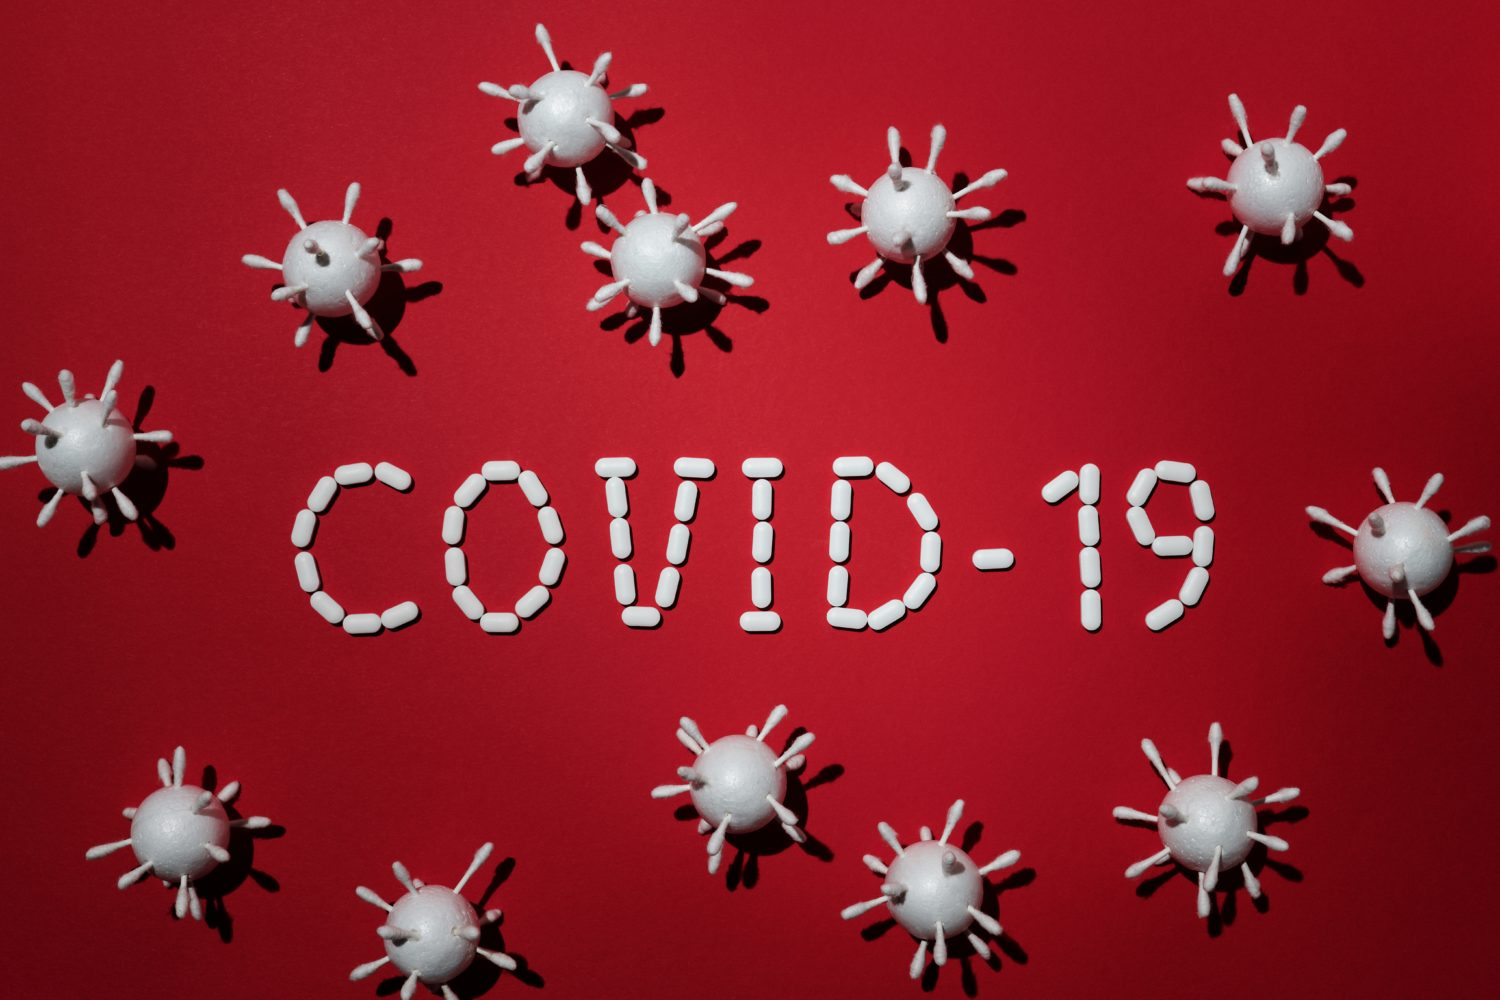 Coronavirus (COVID-19) And The Public Charge Rule